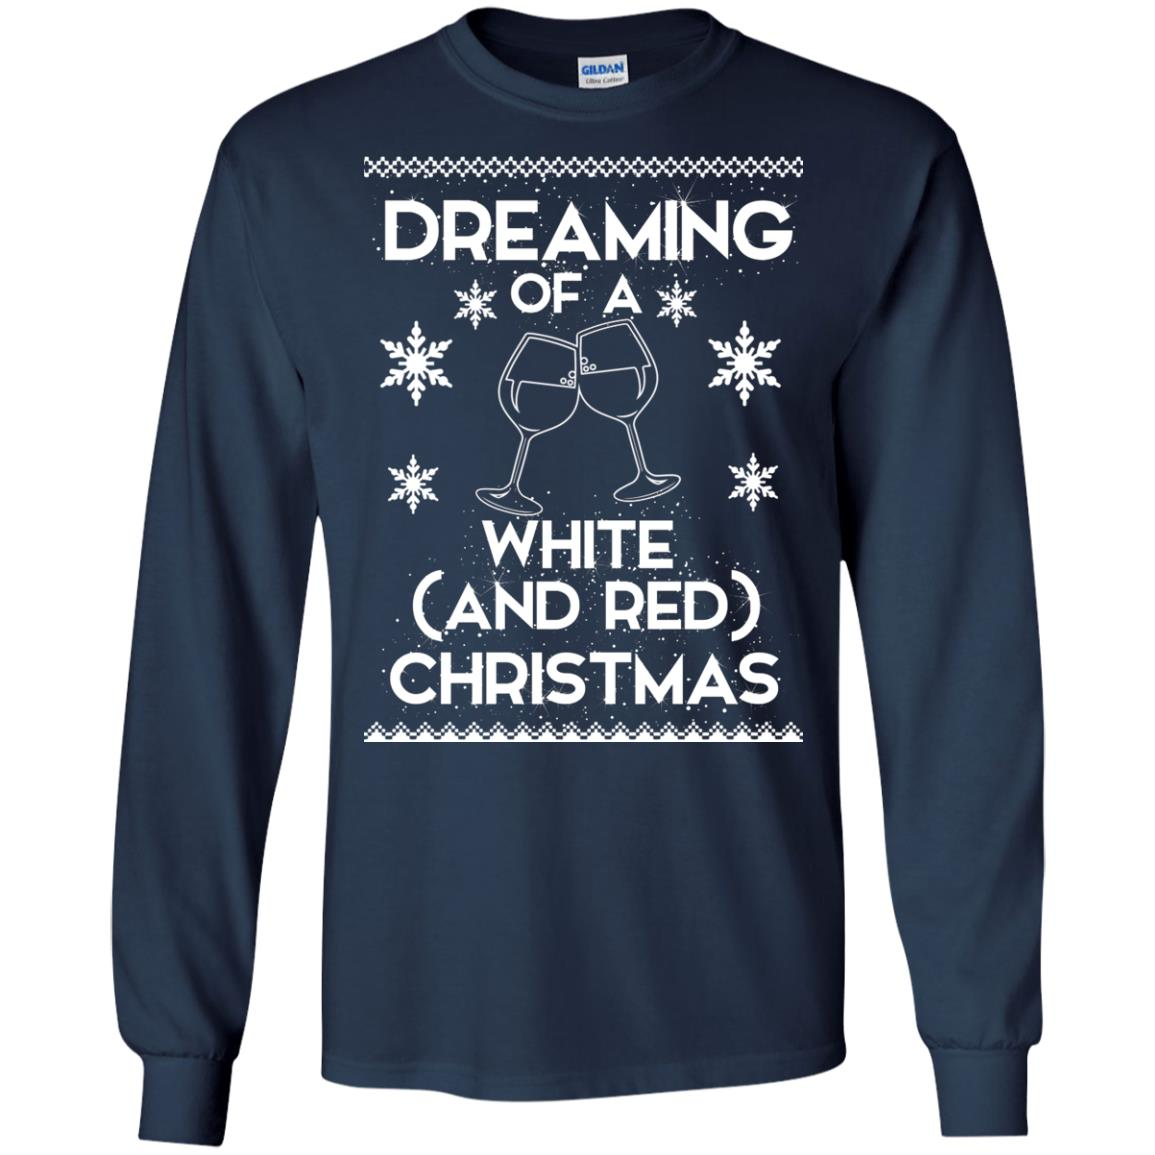 image 1758 - Dreaming of a White and Red Christmas Sweatshirt, Hoodie